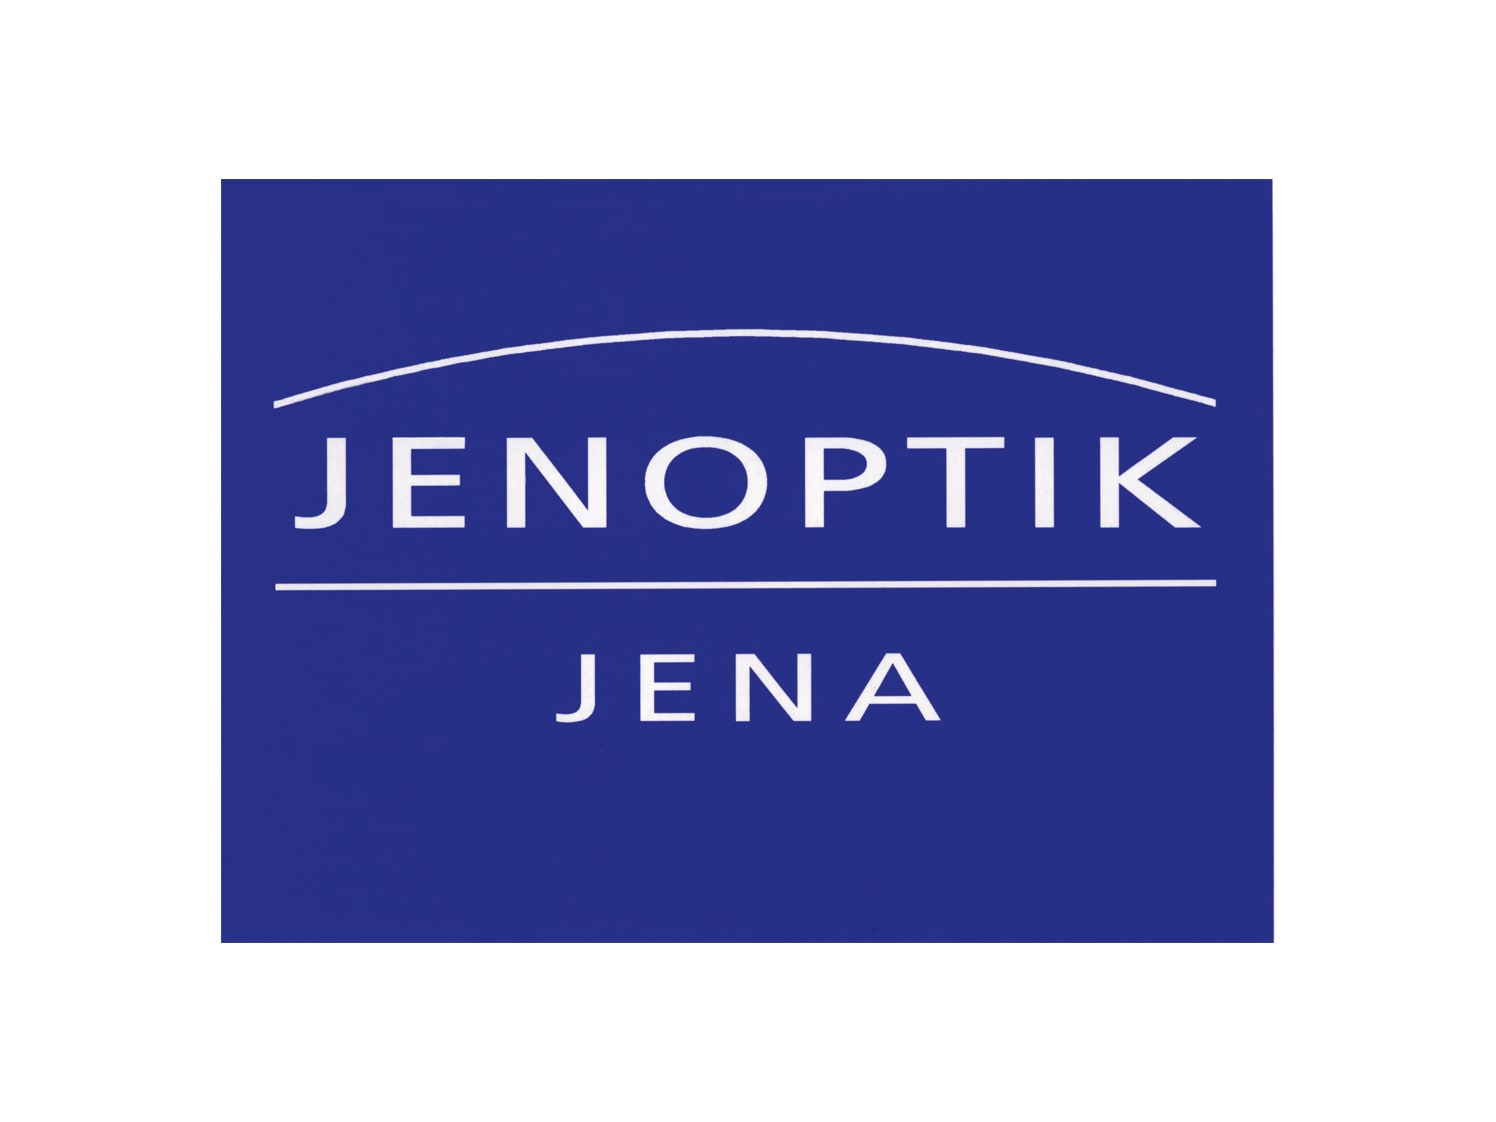 Jenoptik logo from 1991 to 1994